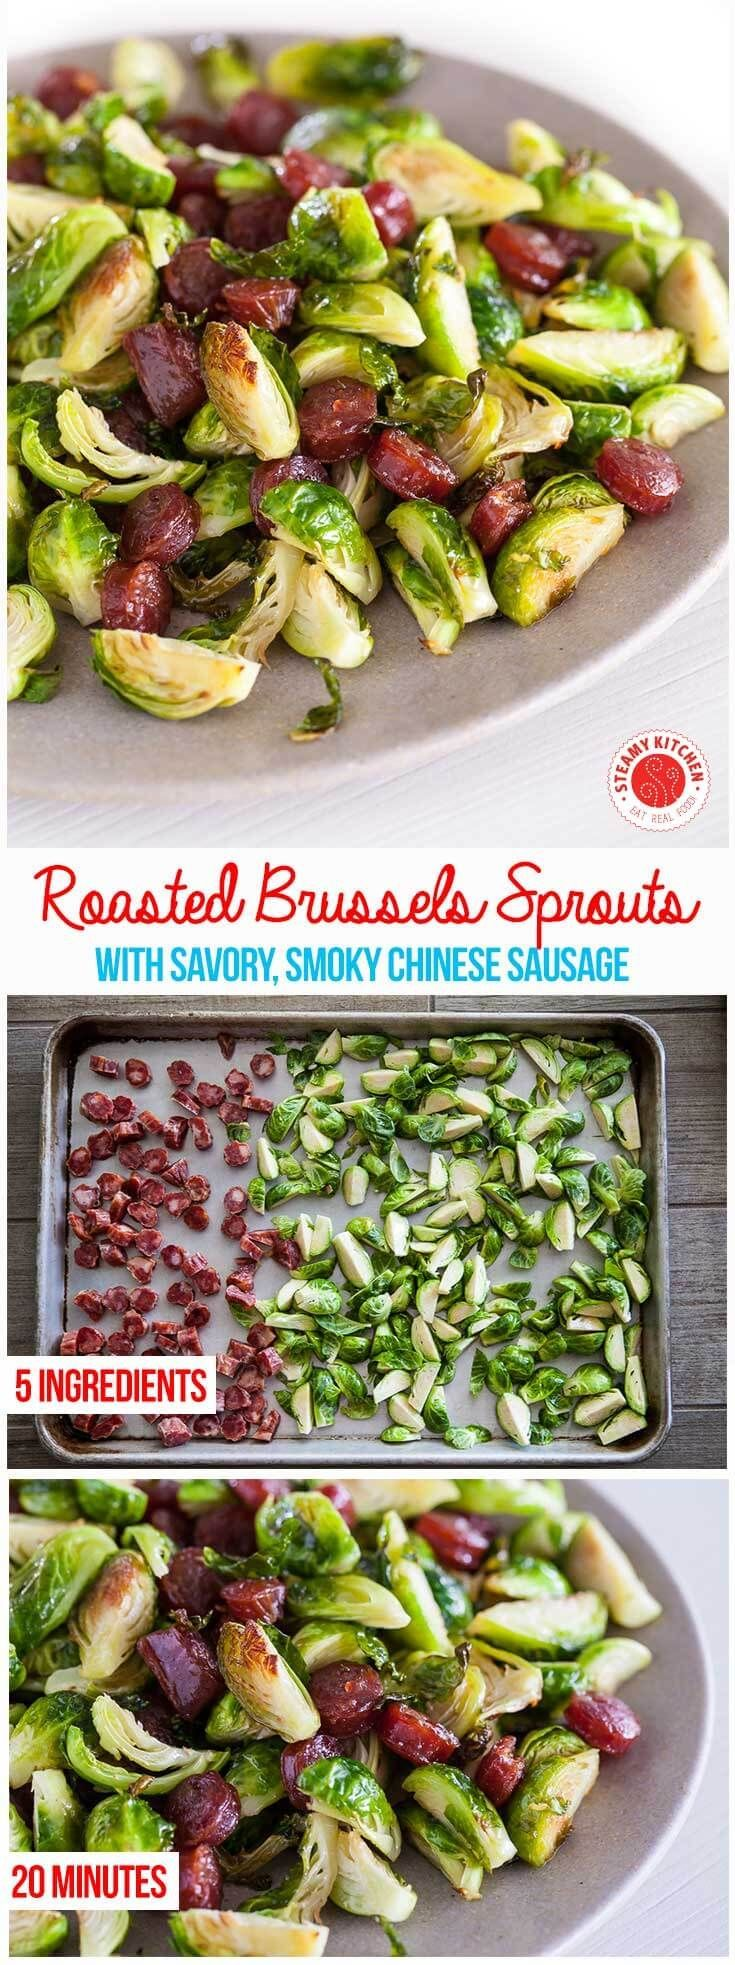 17 Best ideas about Chinese Sausage on Pinterest | Dim sum ...